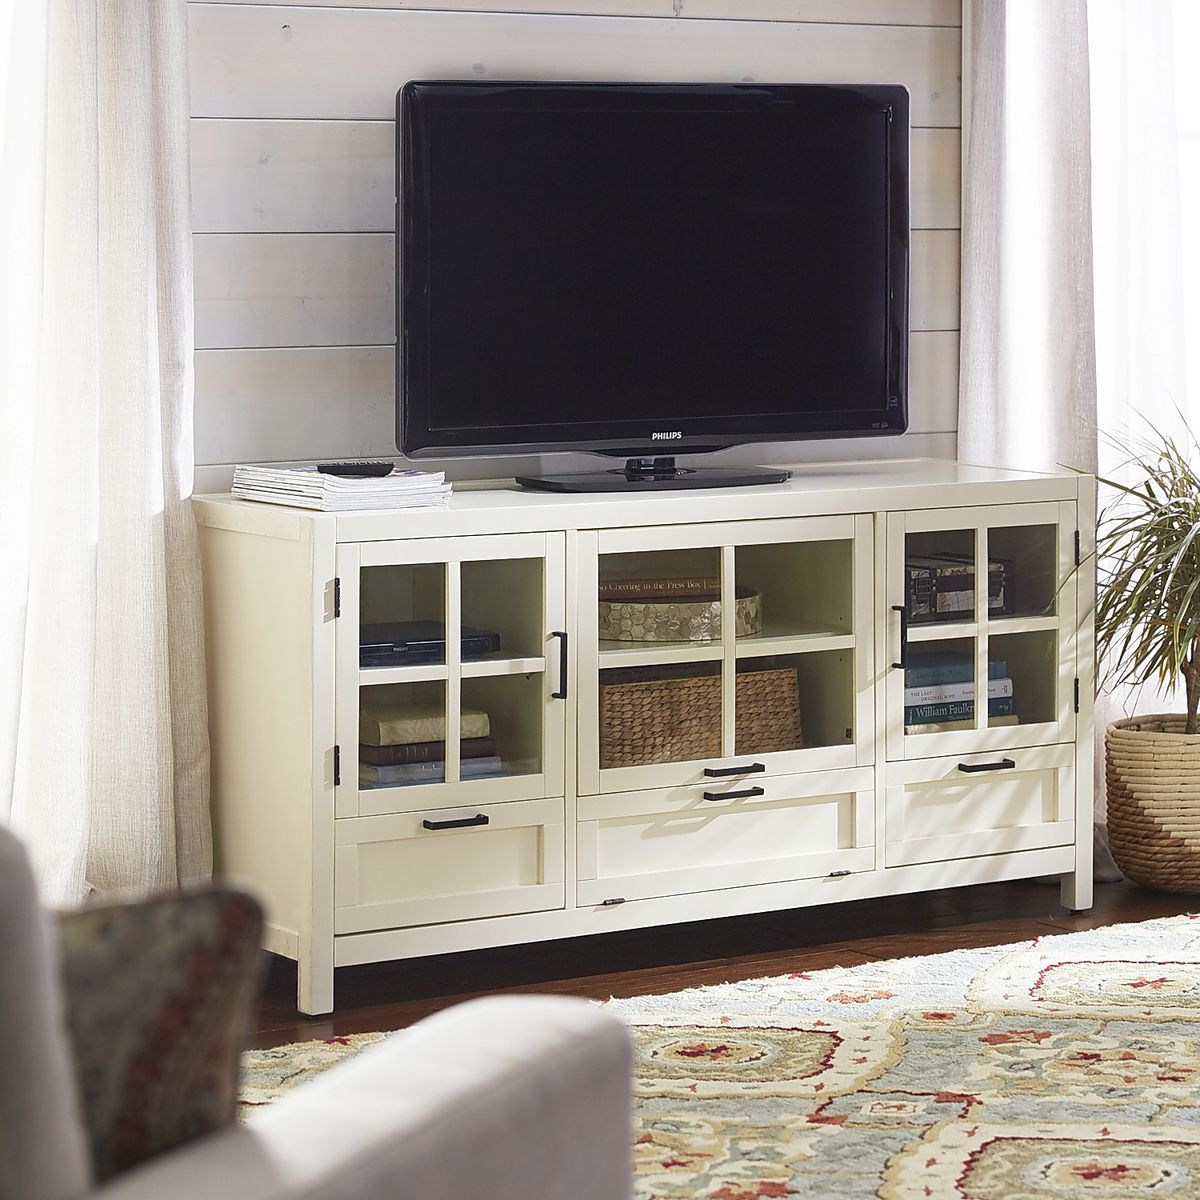 Sausalito Large Tv Stand Antique White Large Tv Stands Whitewashed Tv Stand Cool Tv Stands